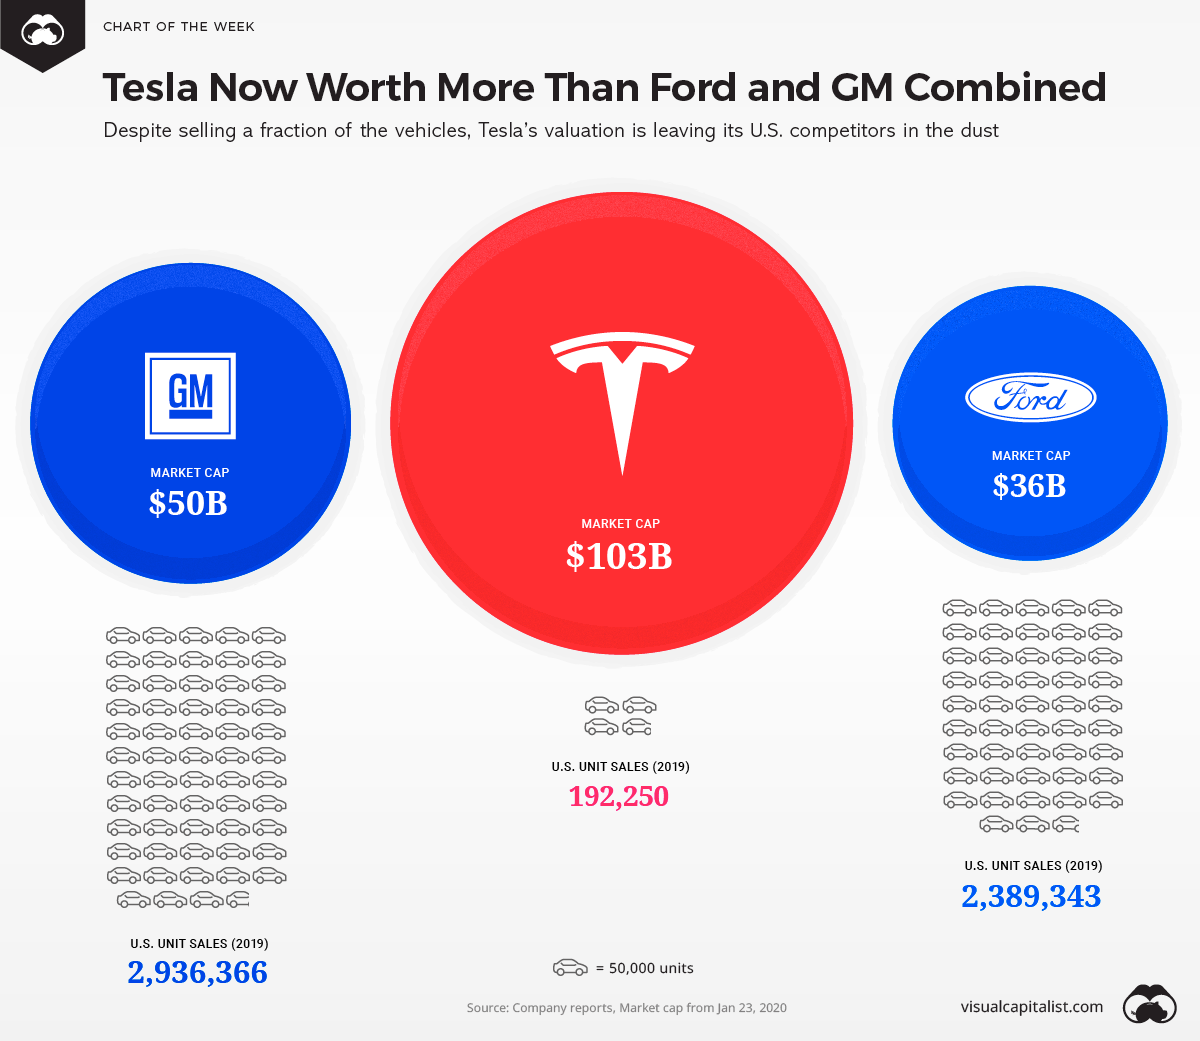 Tesla is Now Worth More than Ford and GM Combined